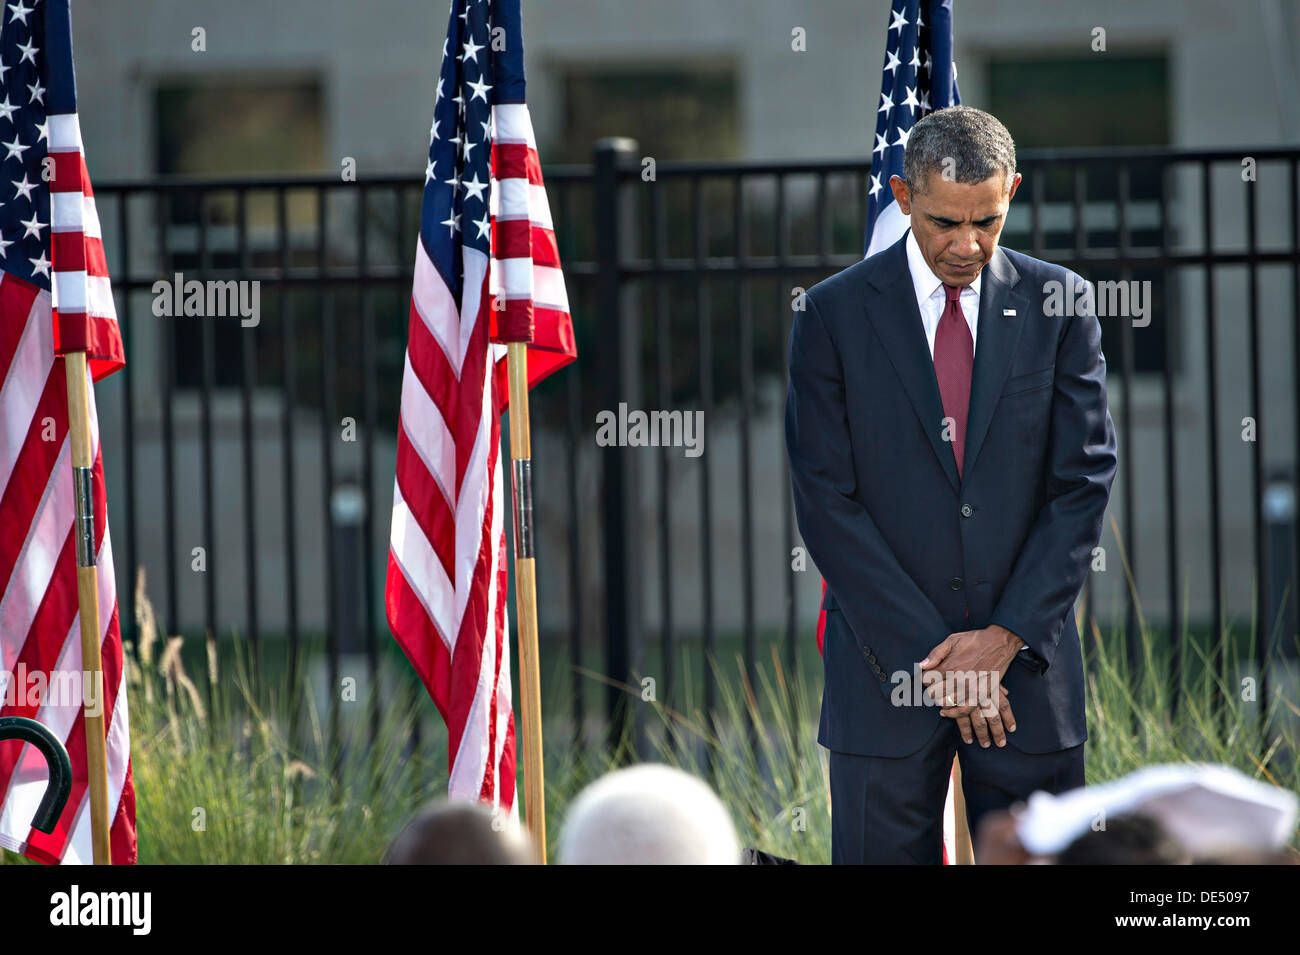 Arlington, Virginia, USA. 11th Sep, 2013. US President Barack Obama stands for a moment of silence during a remembrance ceremony to honor the victims of the 9/11 attacks on the Pentagon September 11, 2013 in Arlingotn, VA. Obama was joined Secretary of Defense Chuck Hagel and Chairman of the Joint Chiefs of Staff Martin Dempsey along with family members of those killed in the terrorist attack twelve years ago. Credit:  Planetpix/Alamy Live News - Stock Image